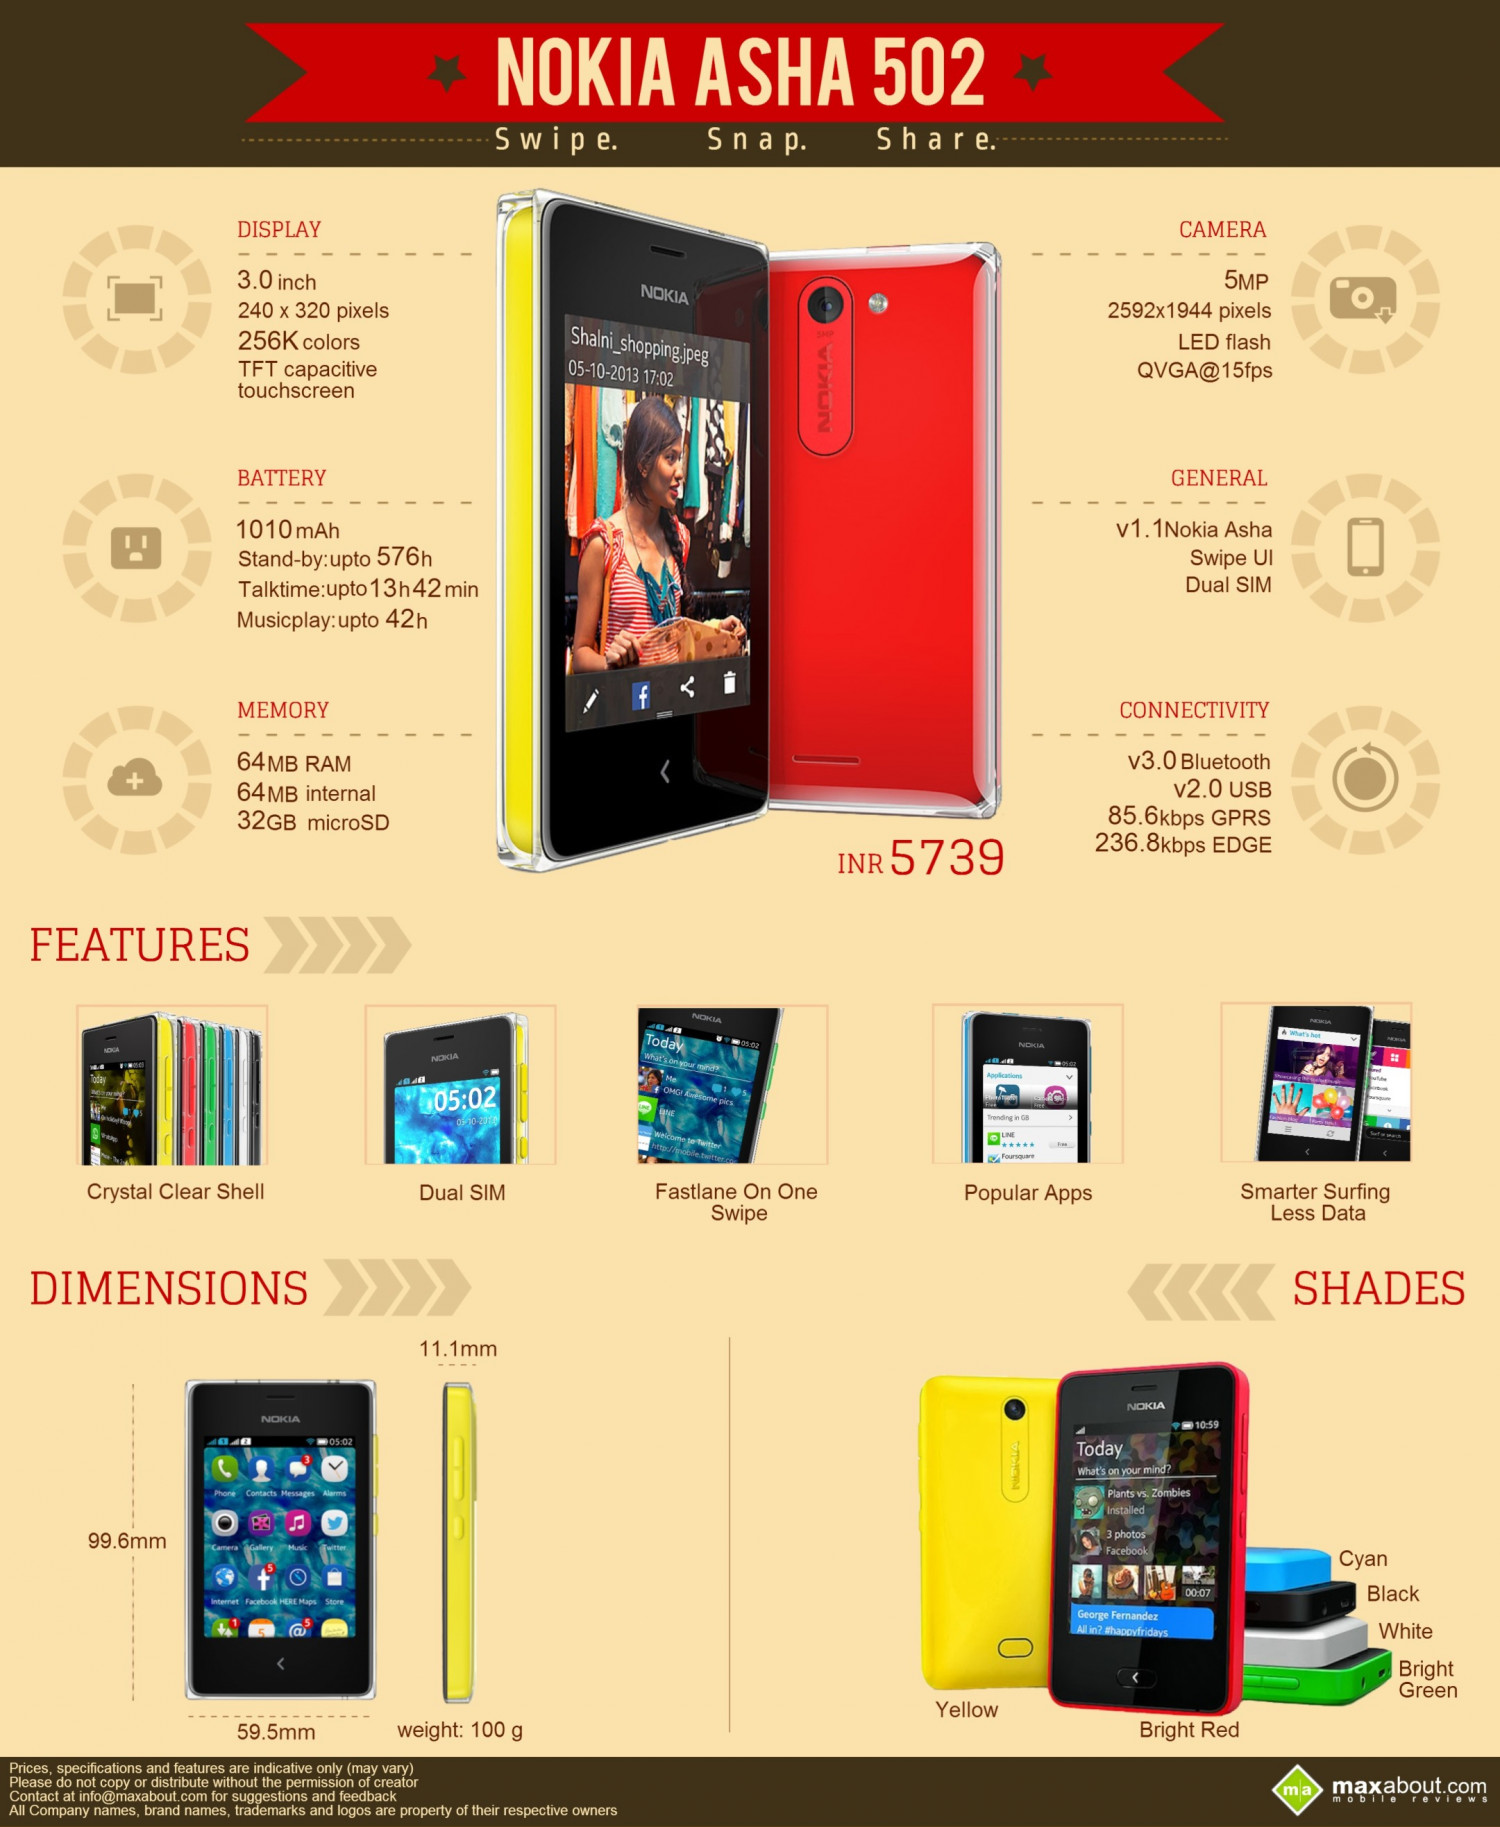 Nokia Asha 502 Dual SIM: Specifications, Features & Price Infographic